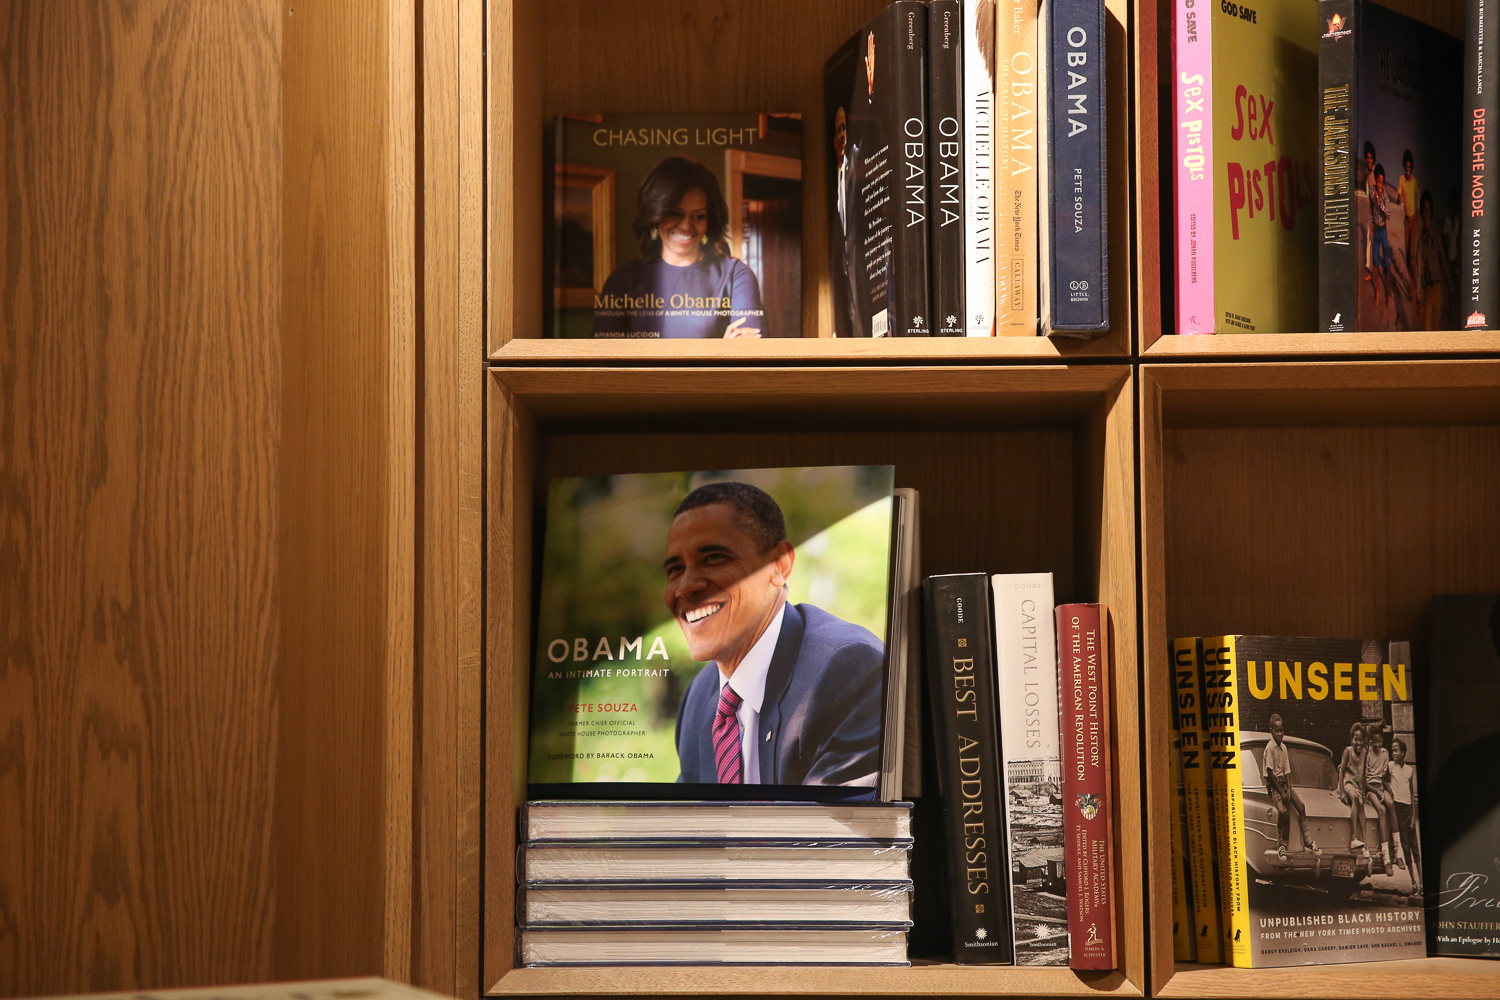 Kramerbooks & Afterwords Cafe was open at midnight last night, when James Comey's